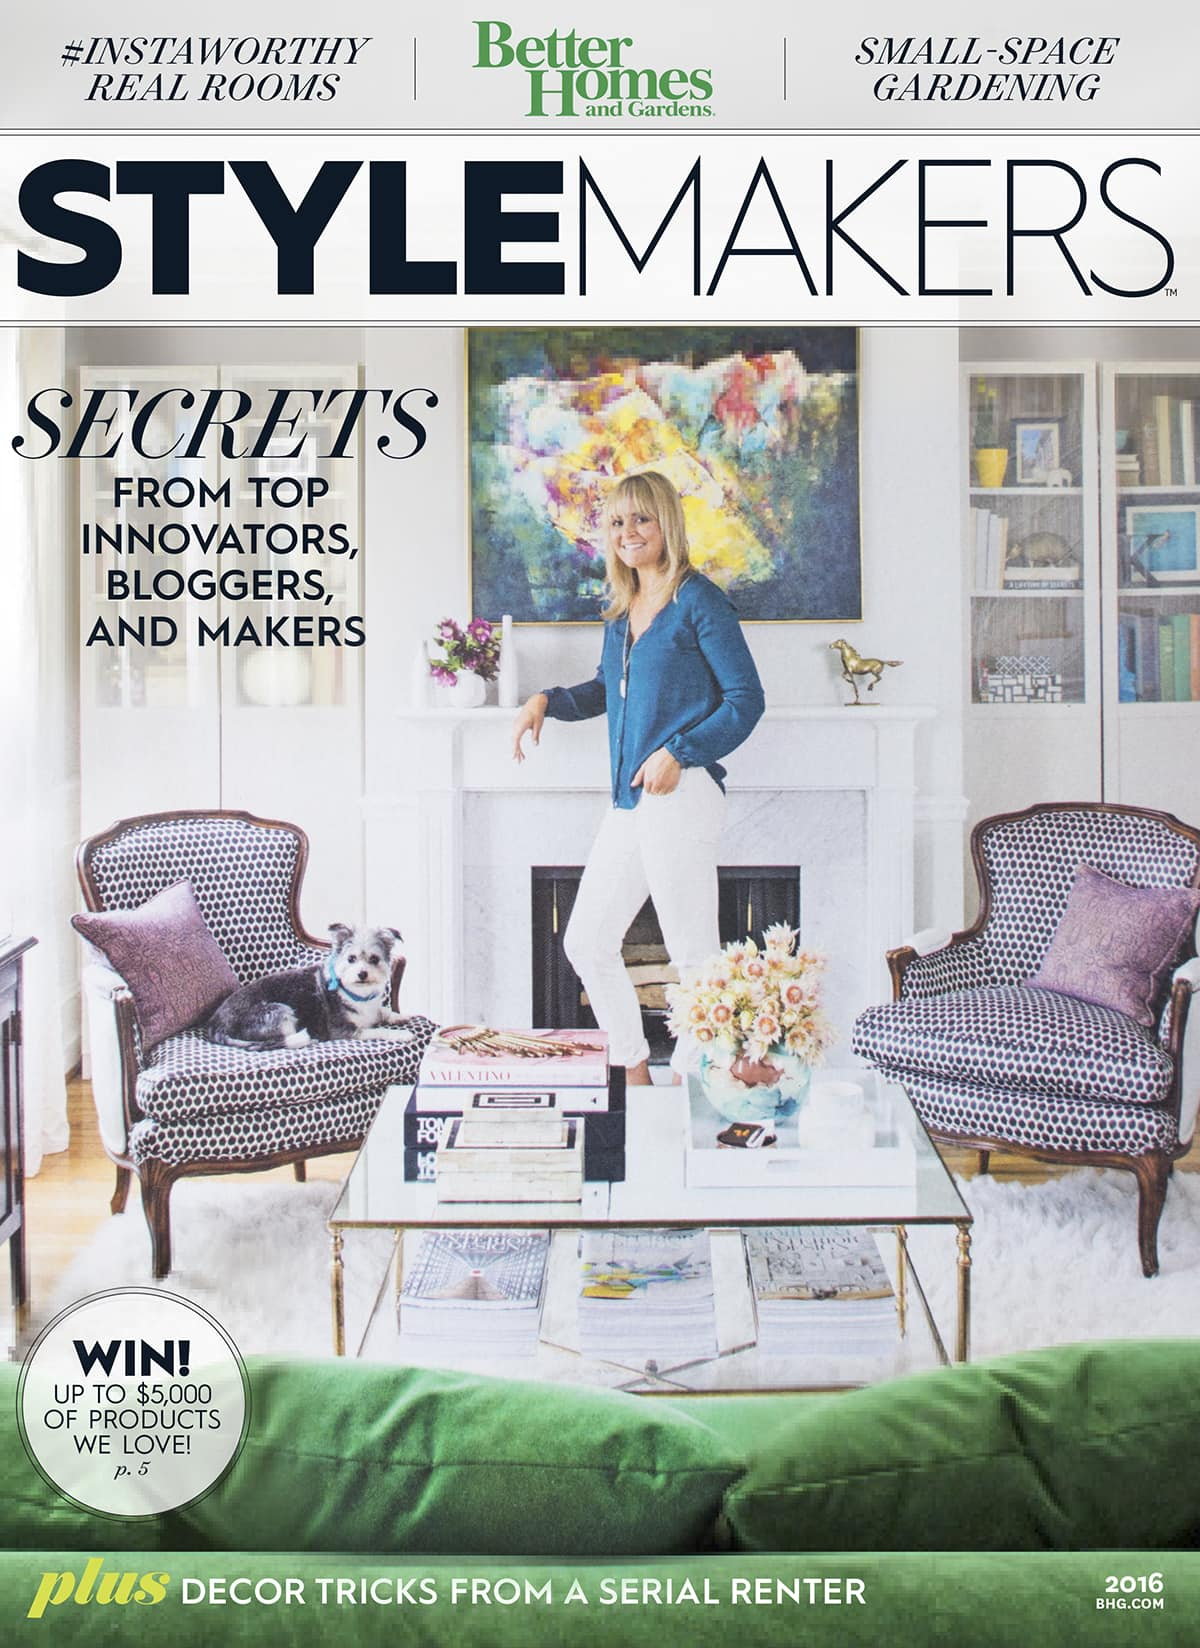 Better Homes and Gardens Stylemakers Issue 2016